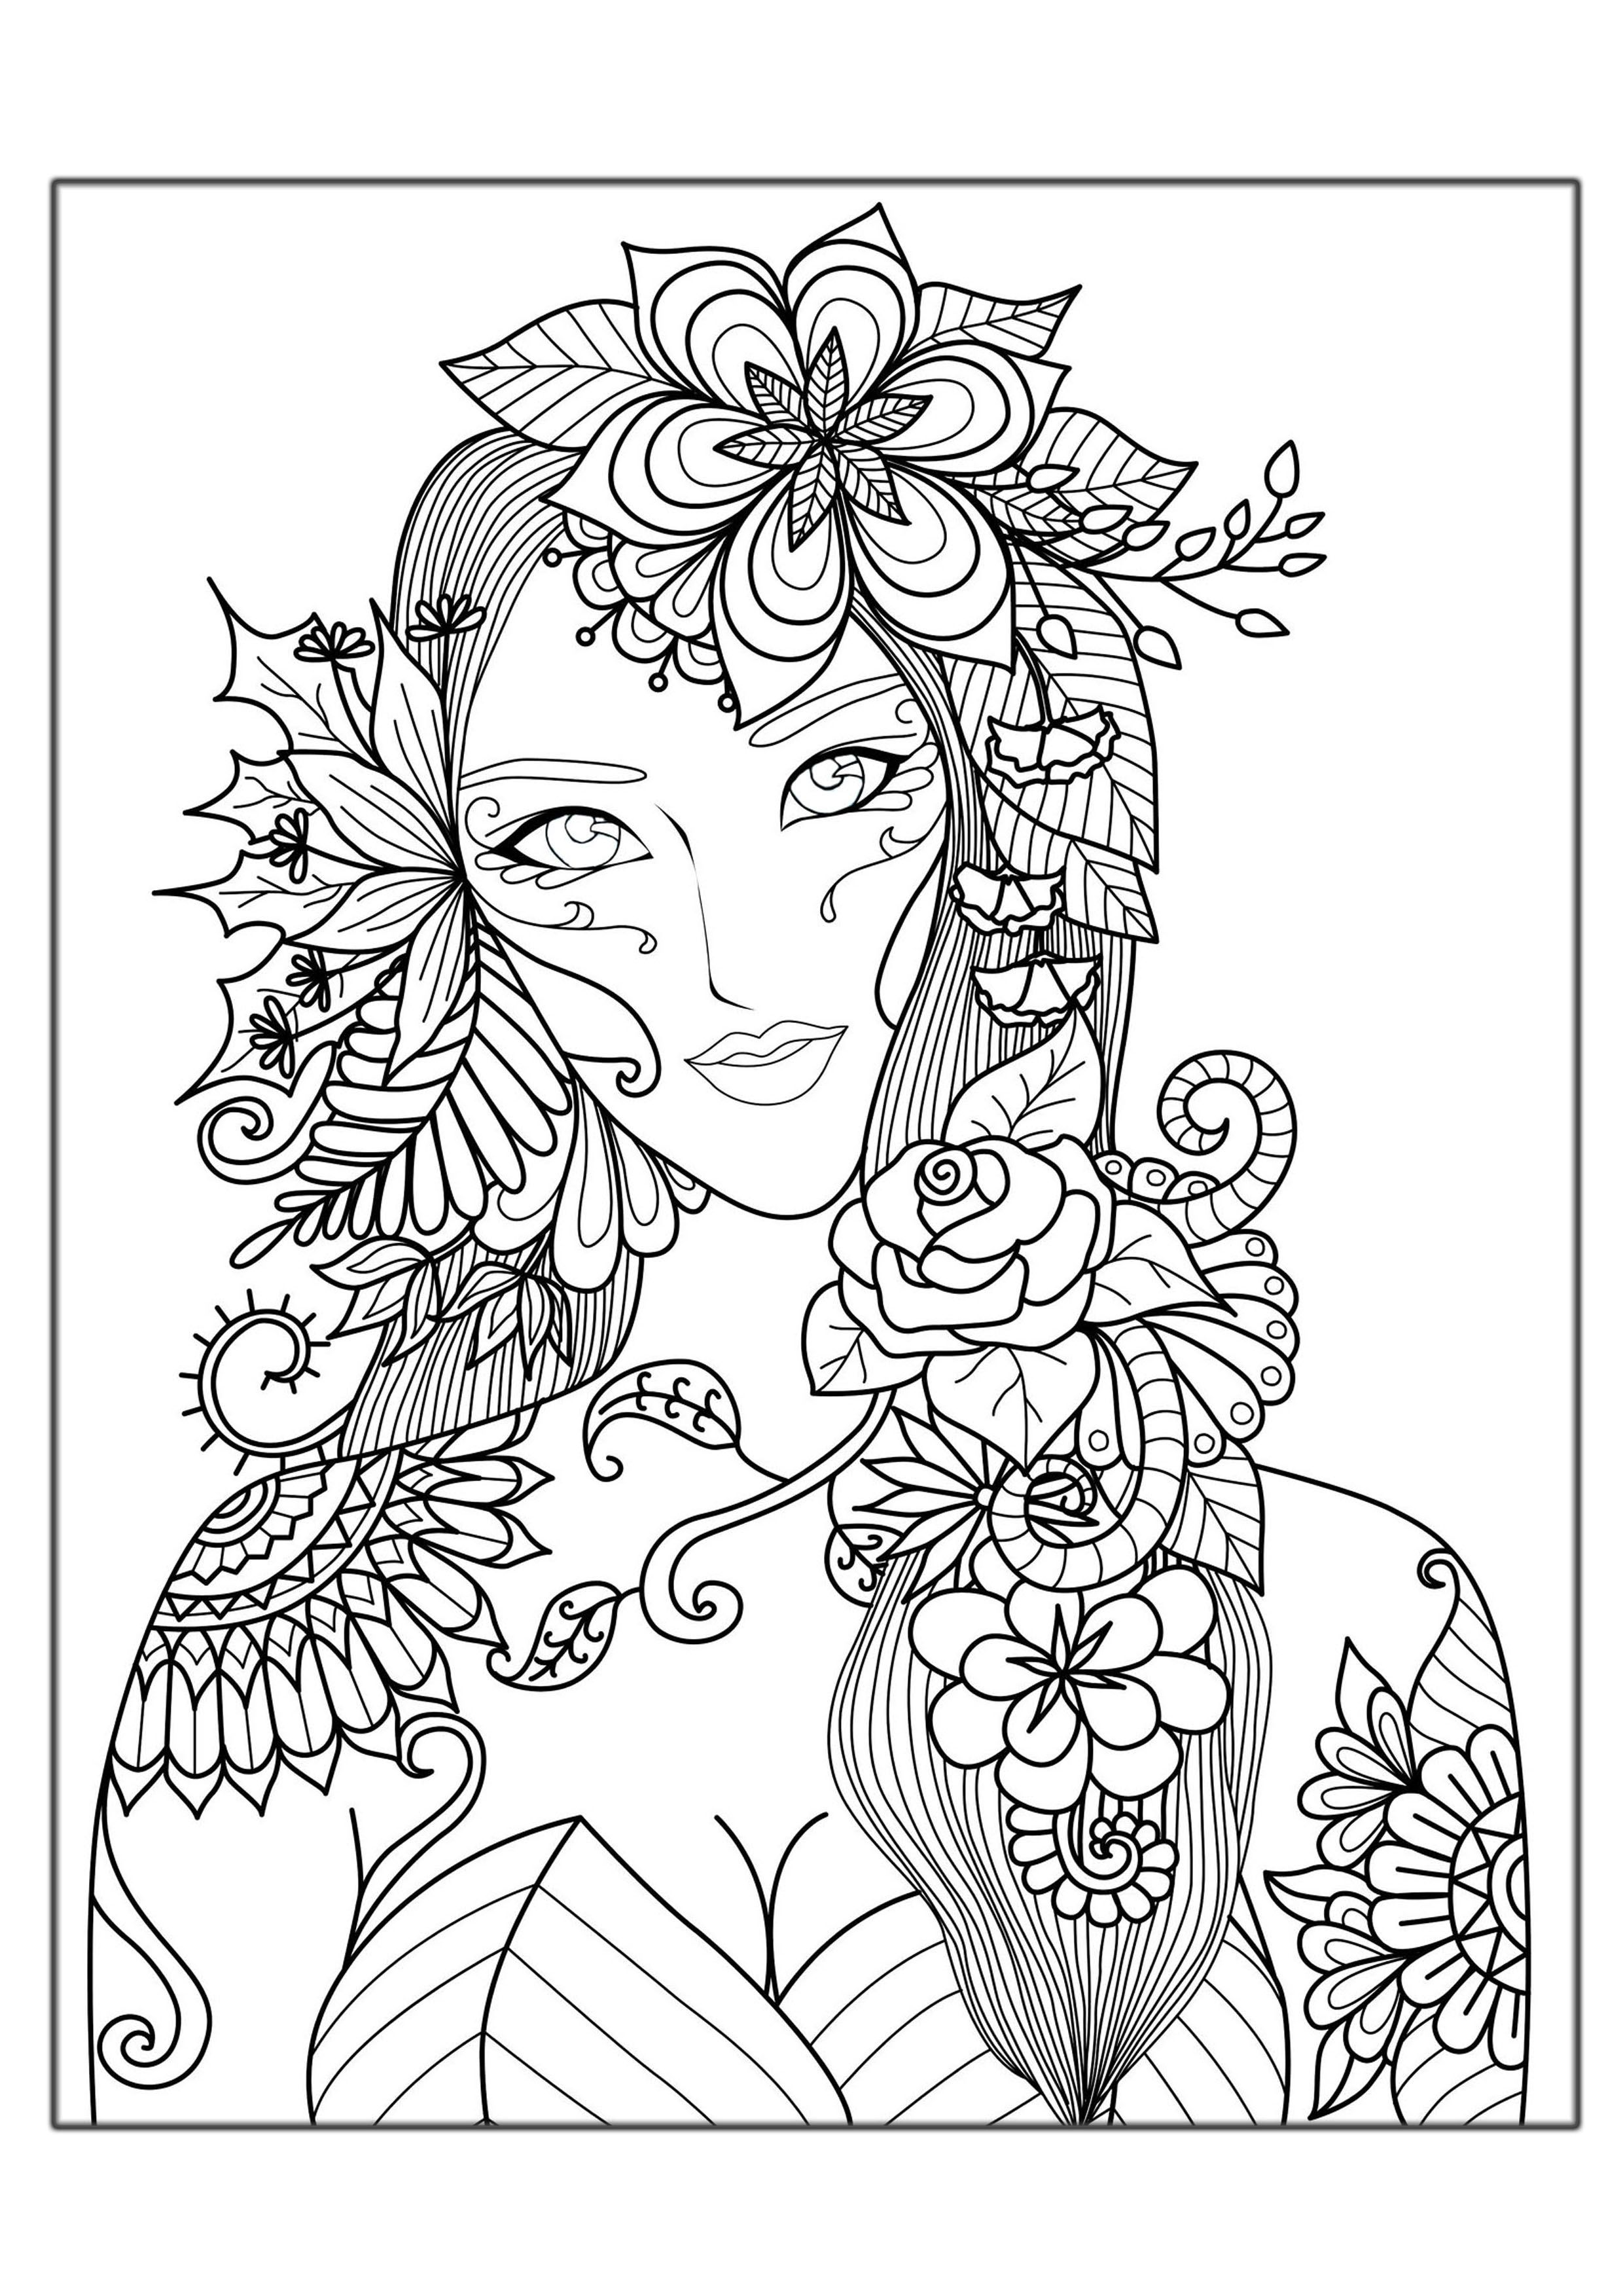 Coloring page adults woman flowers art drawing downloads